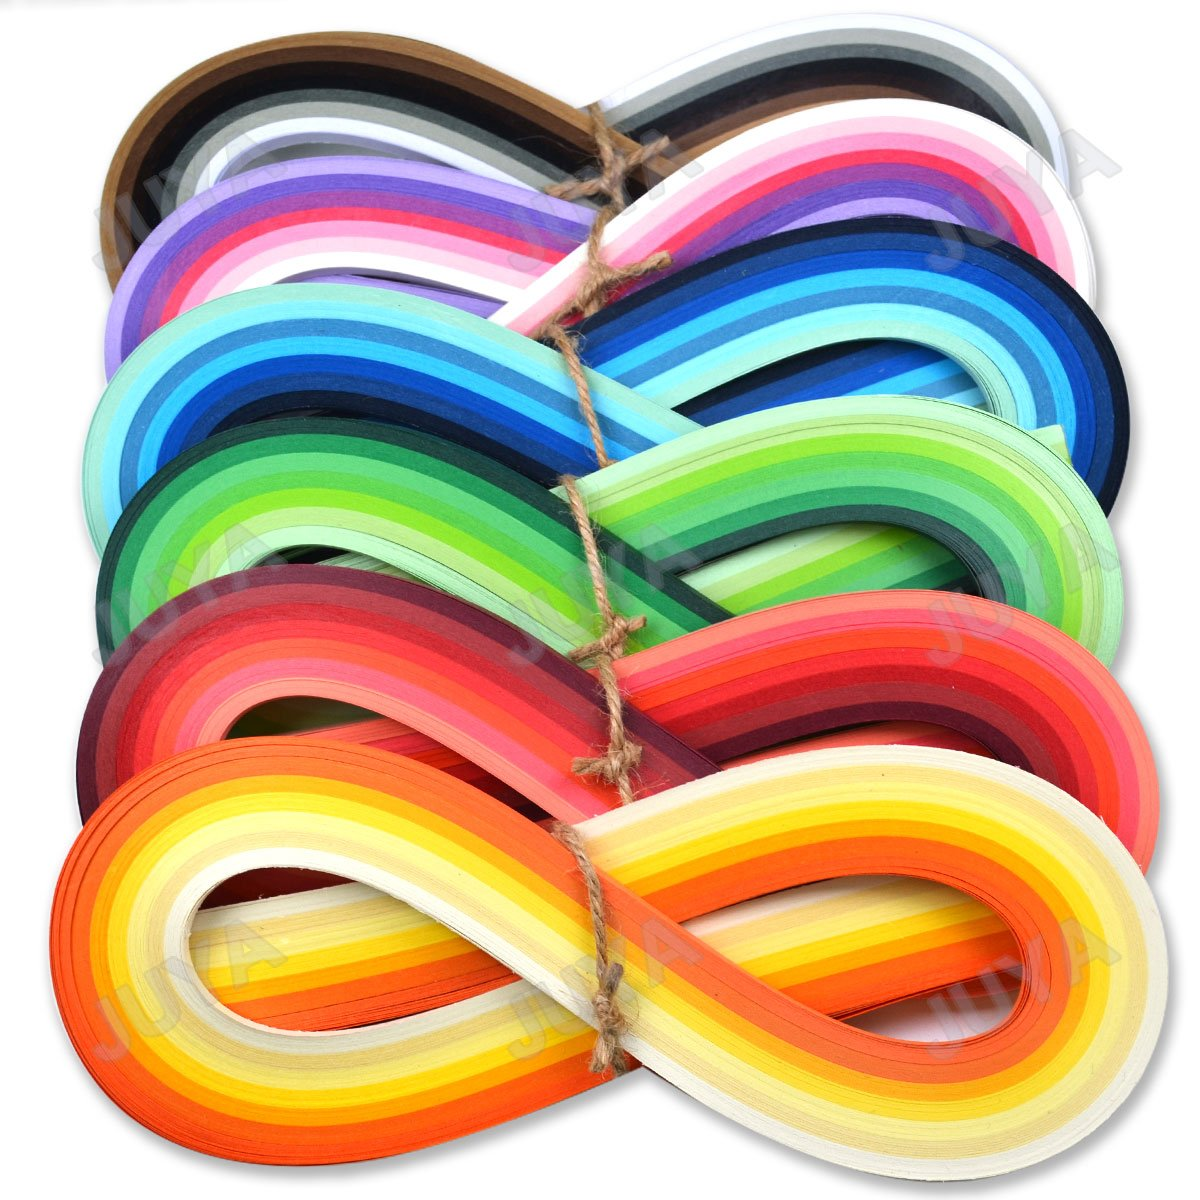 Juya Paper Quilling Set 54cm Length Up to 42 Shade Colors 6 Pack 7 Brown Colors,Width 10mm